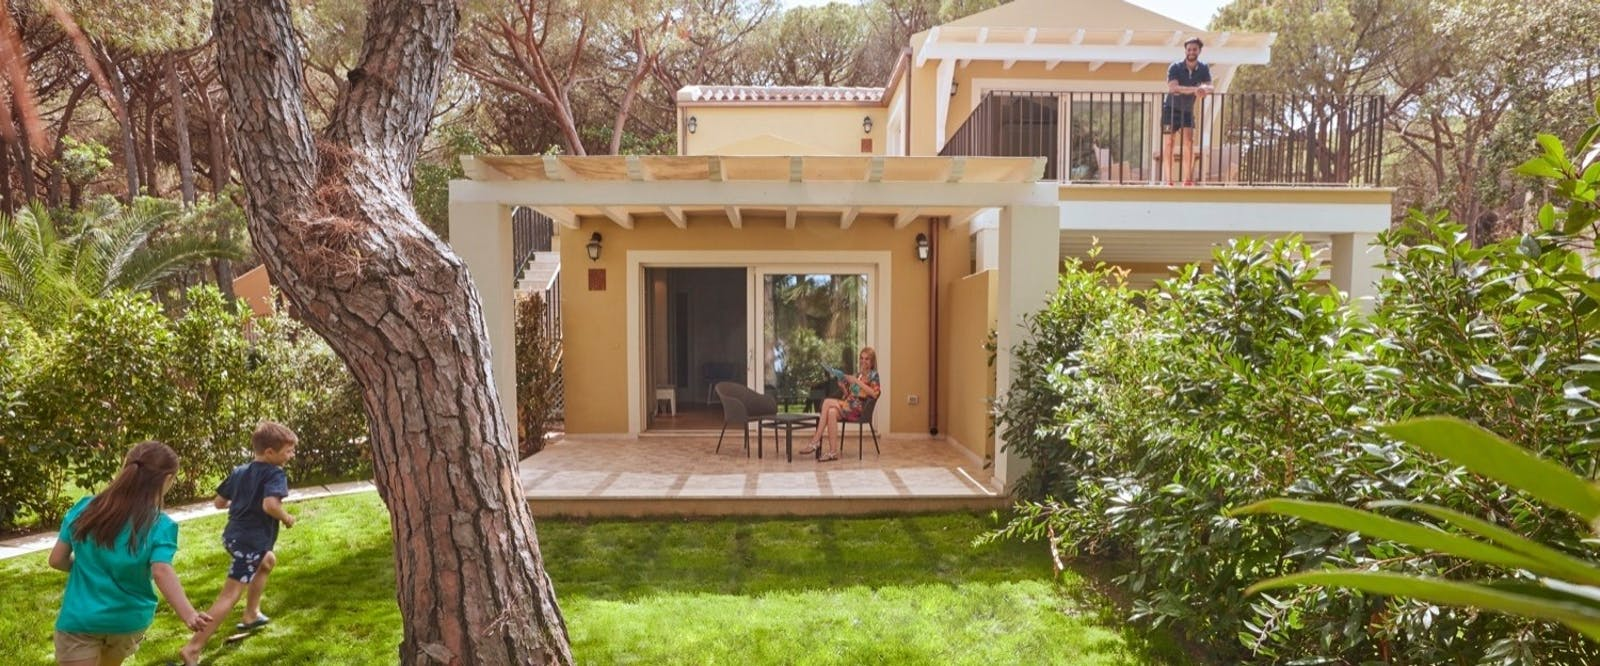 Accommodation Exterior at Forte Village Le Palme, South Sardinia, Italy